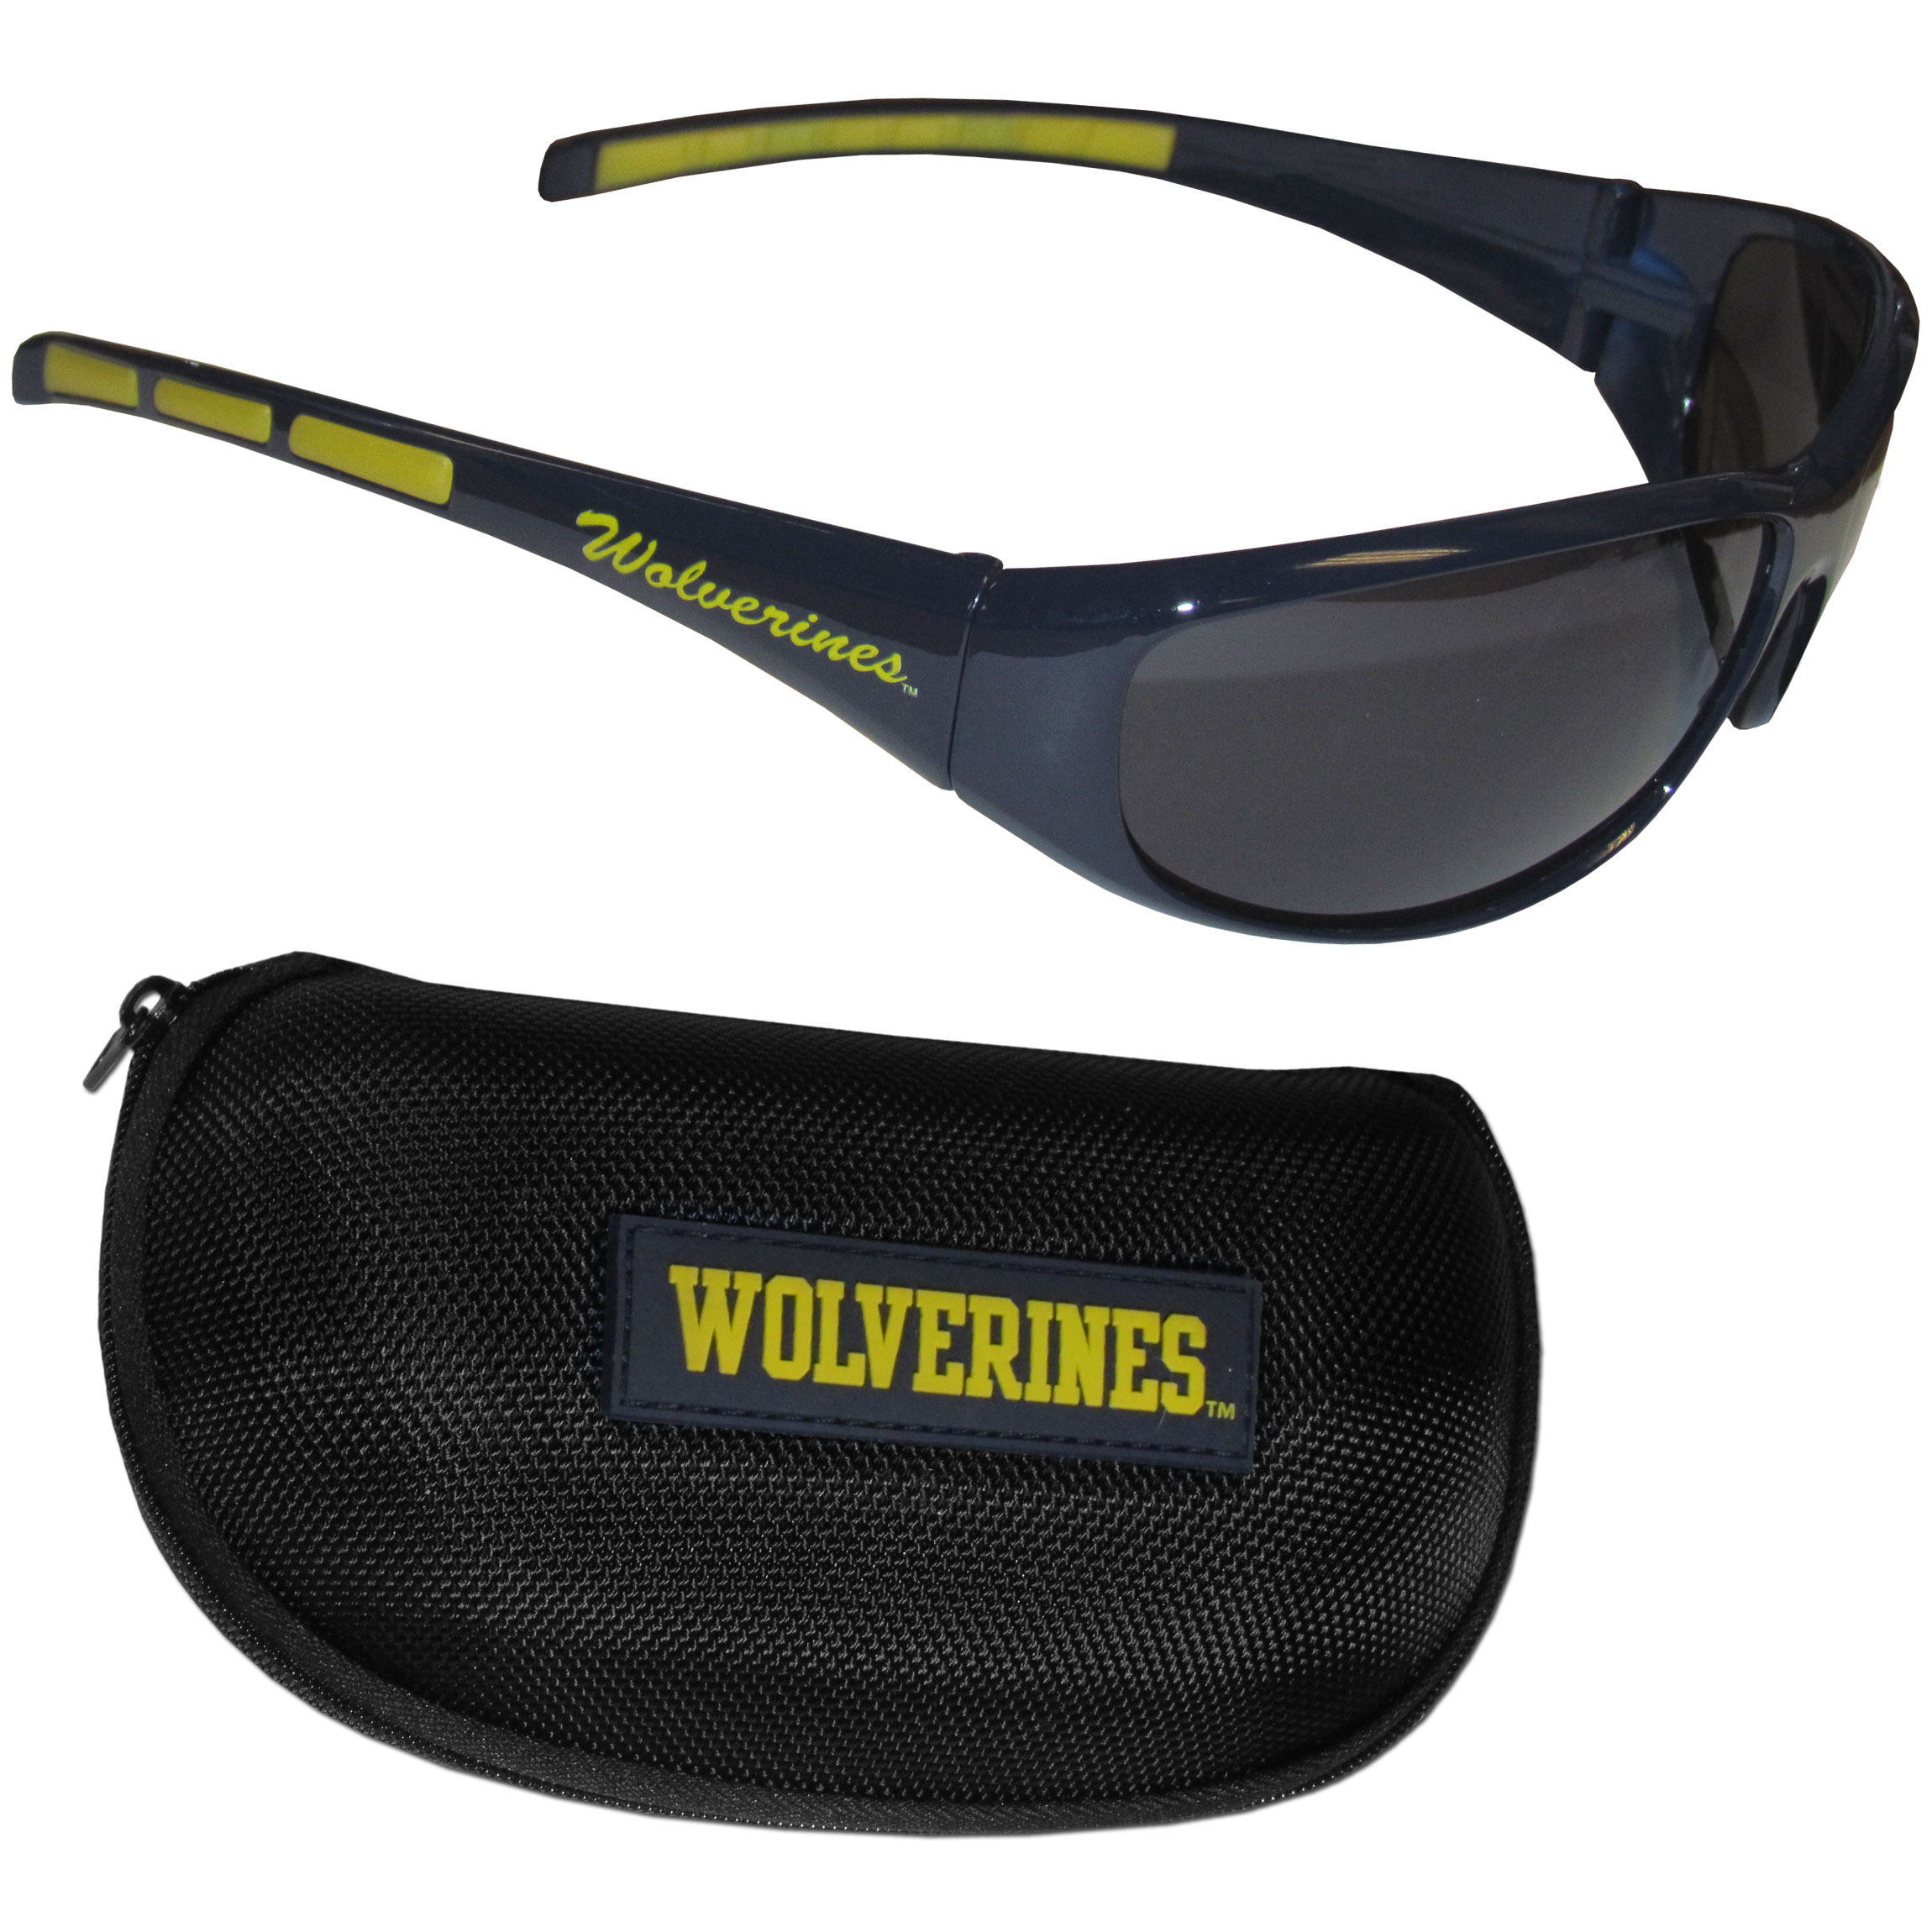 Michigan Wolverines Wrap Sunglass and Case Set - This great set includes a high quality pair of Michigan Wolverines wrap sunglasses and hard carrying case.